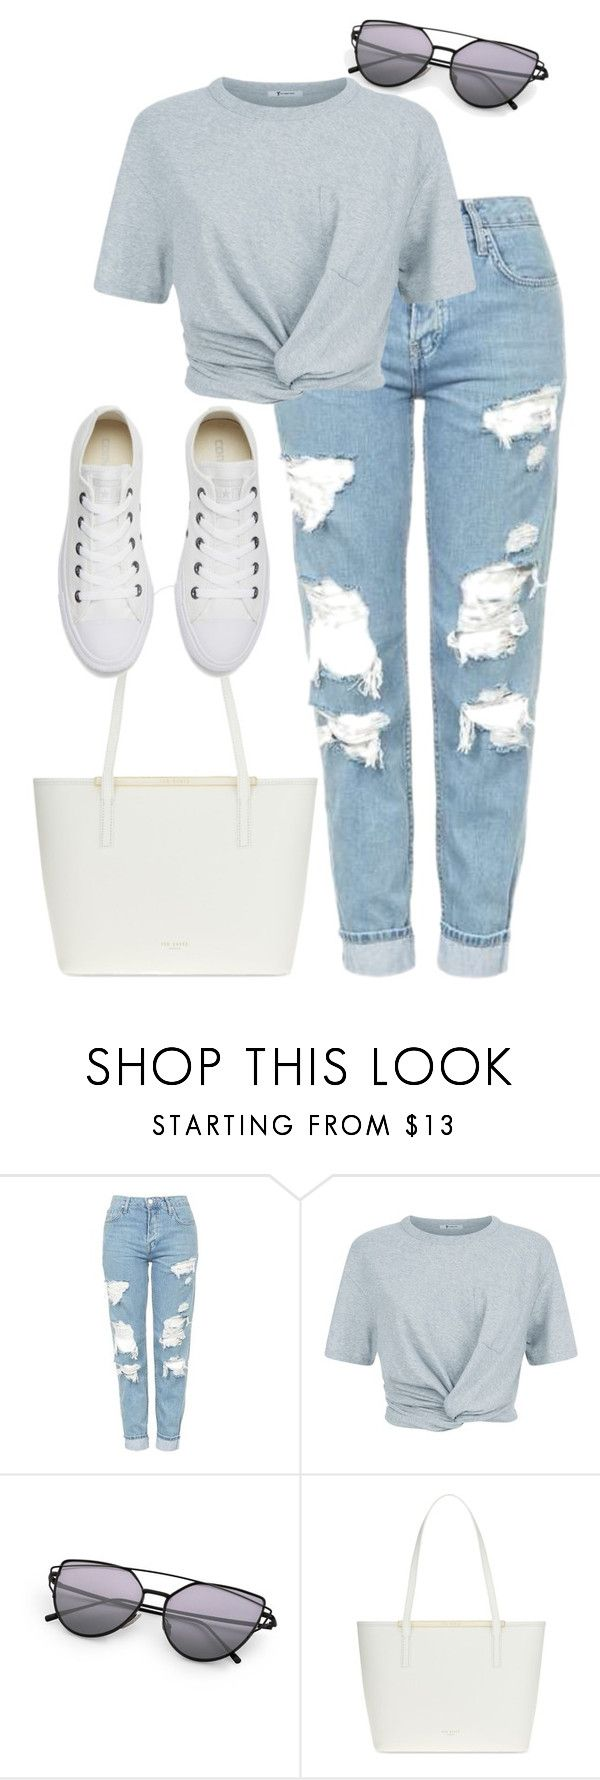 """Untitled #252"" by epiphany-of-life on Polyvore featuring Topshop, T By Alexander Wang, Ted Baker and Converse"